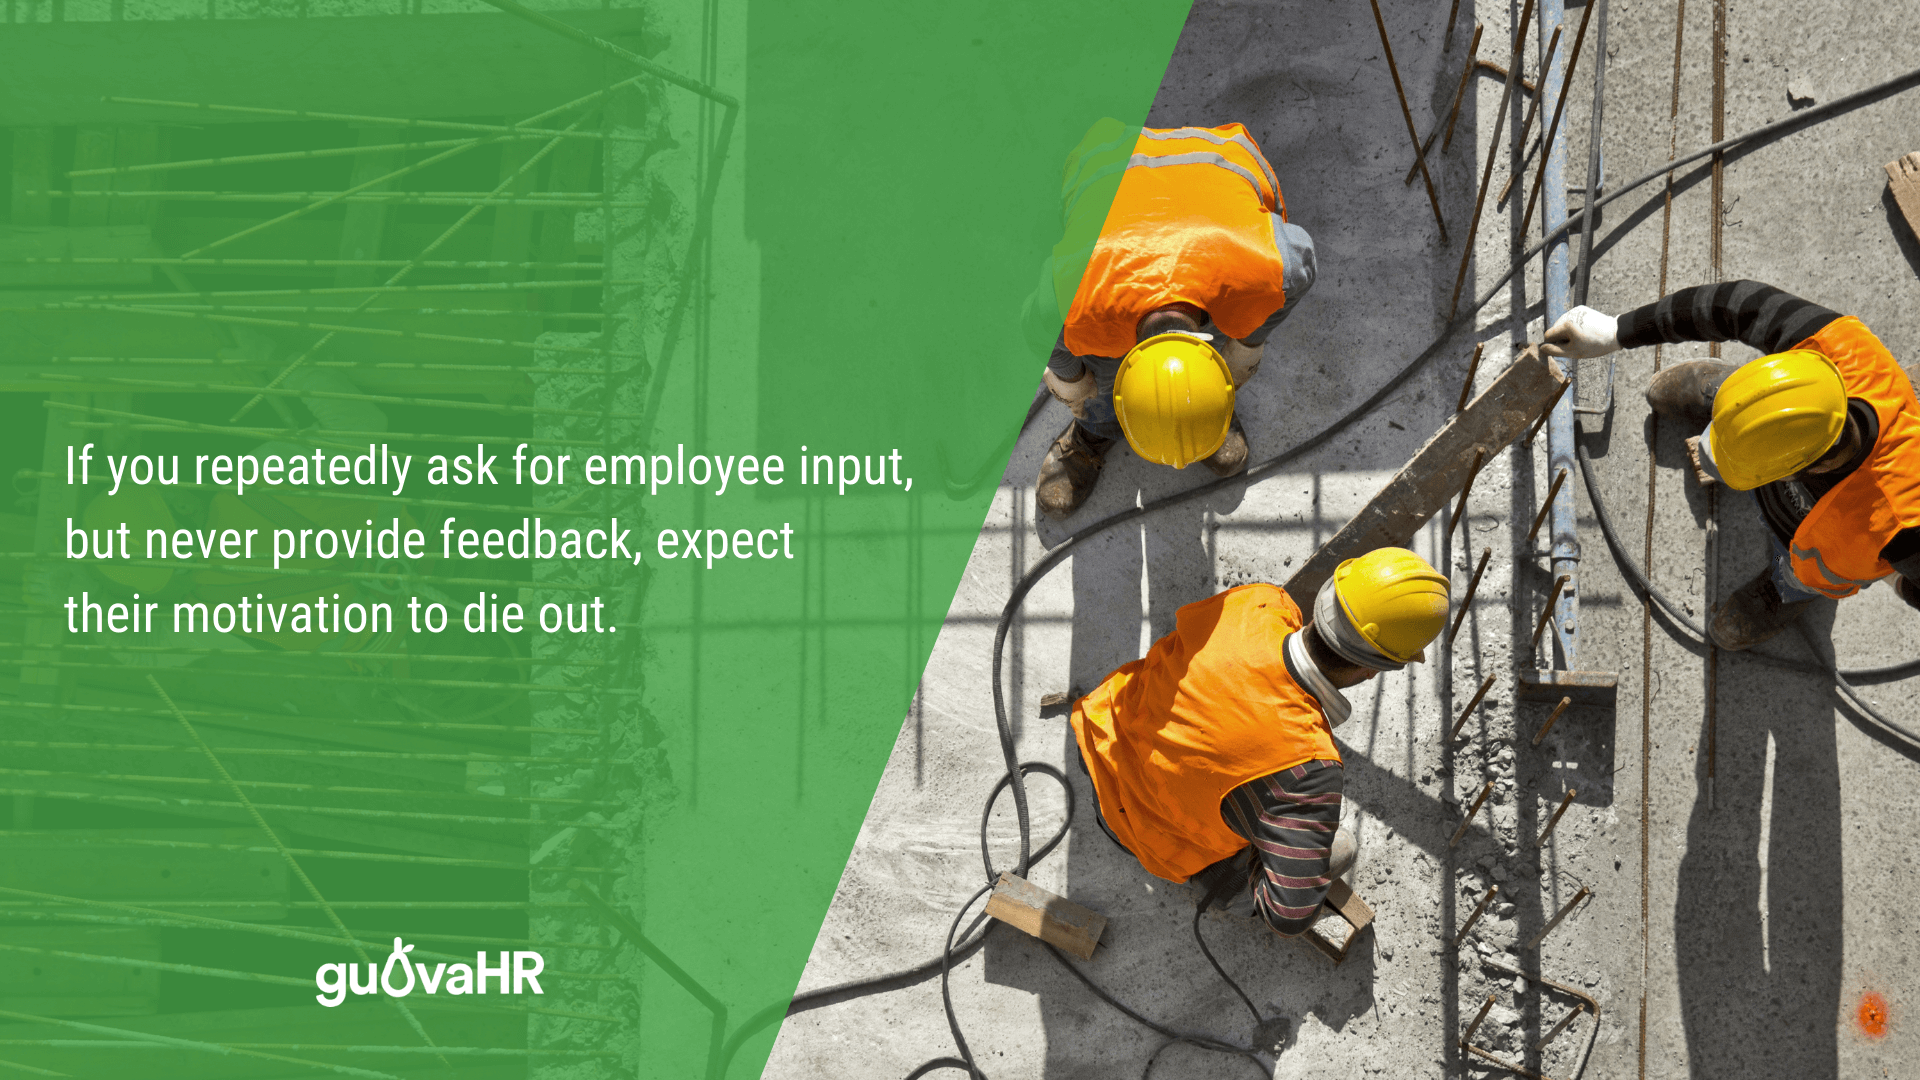 """Construction workers on site, and an internal communication problem quote that says """"If you repeatedly ask for employee input, but never provide feedback, expect employee motivation to die out."""""""